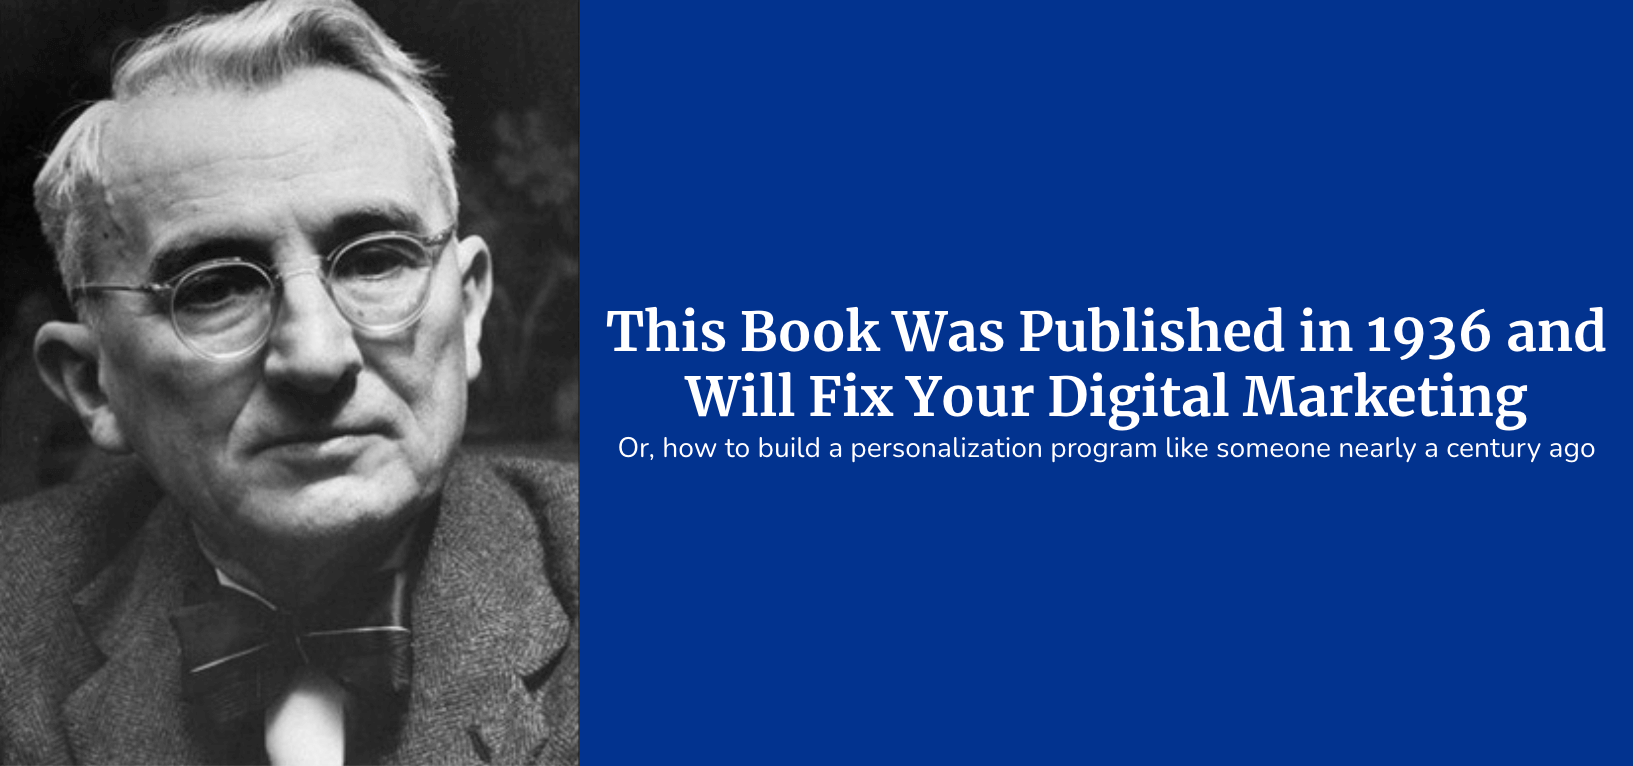 (Image - side by side of Dale Carnegie next to text over a blue block) - This book was published in 1936 and will fix your digital marketing